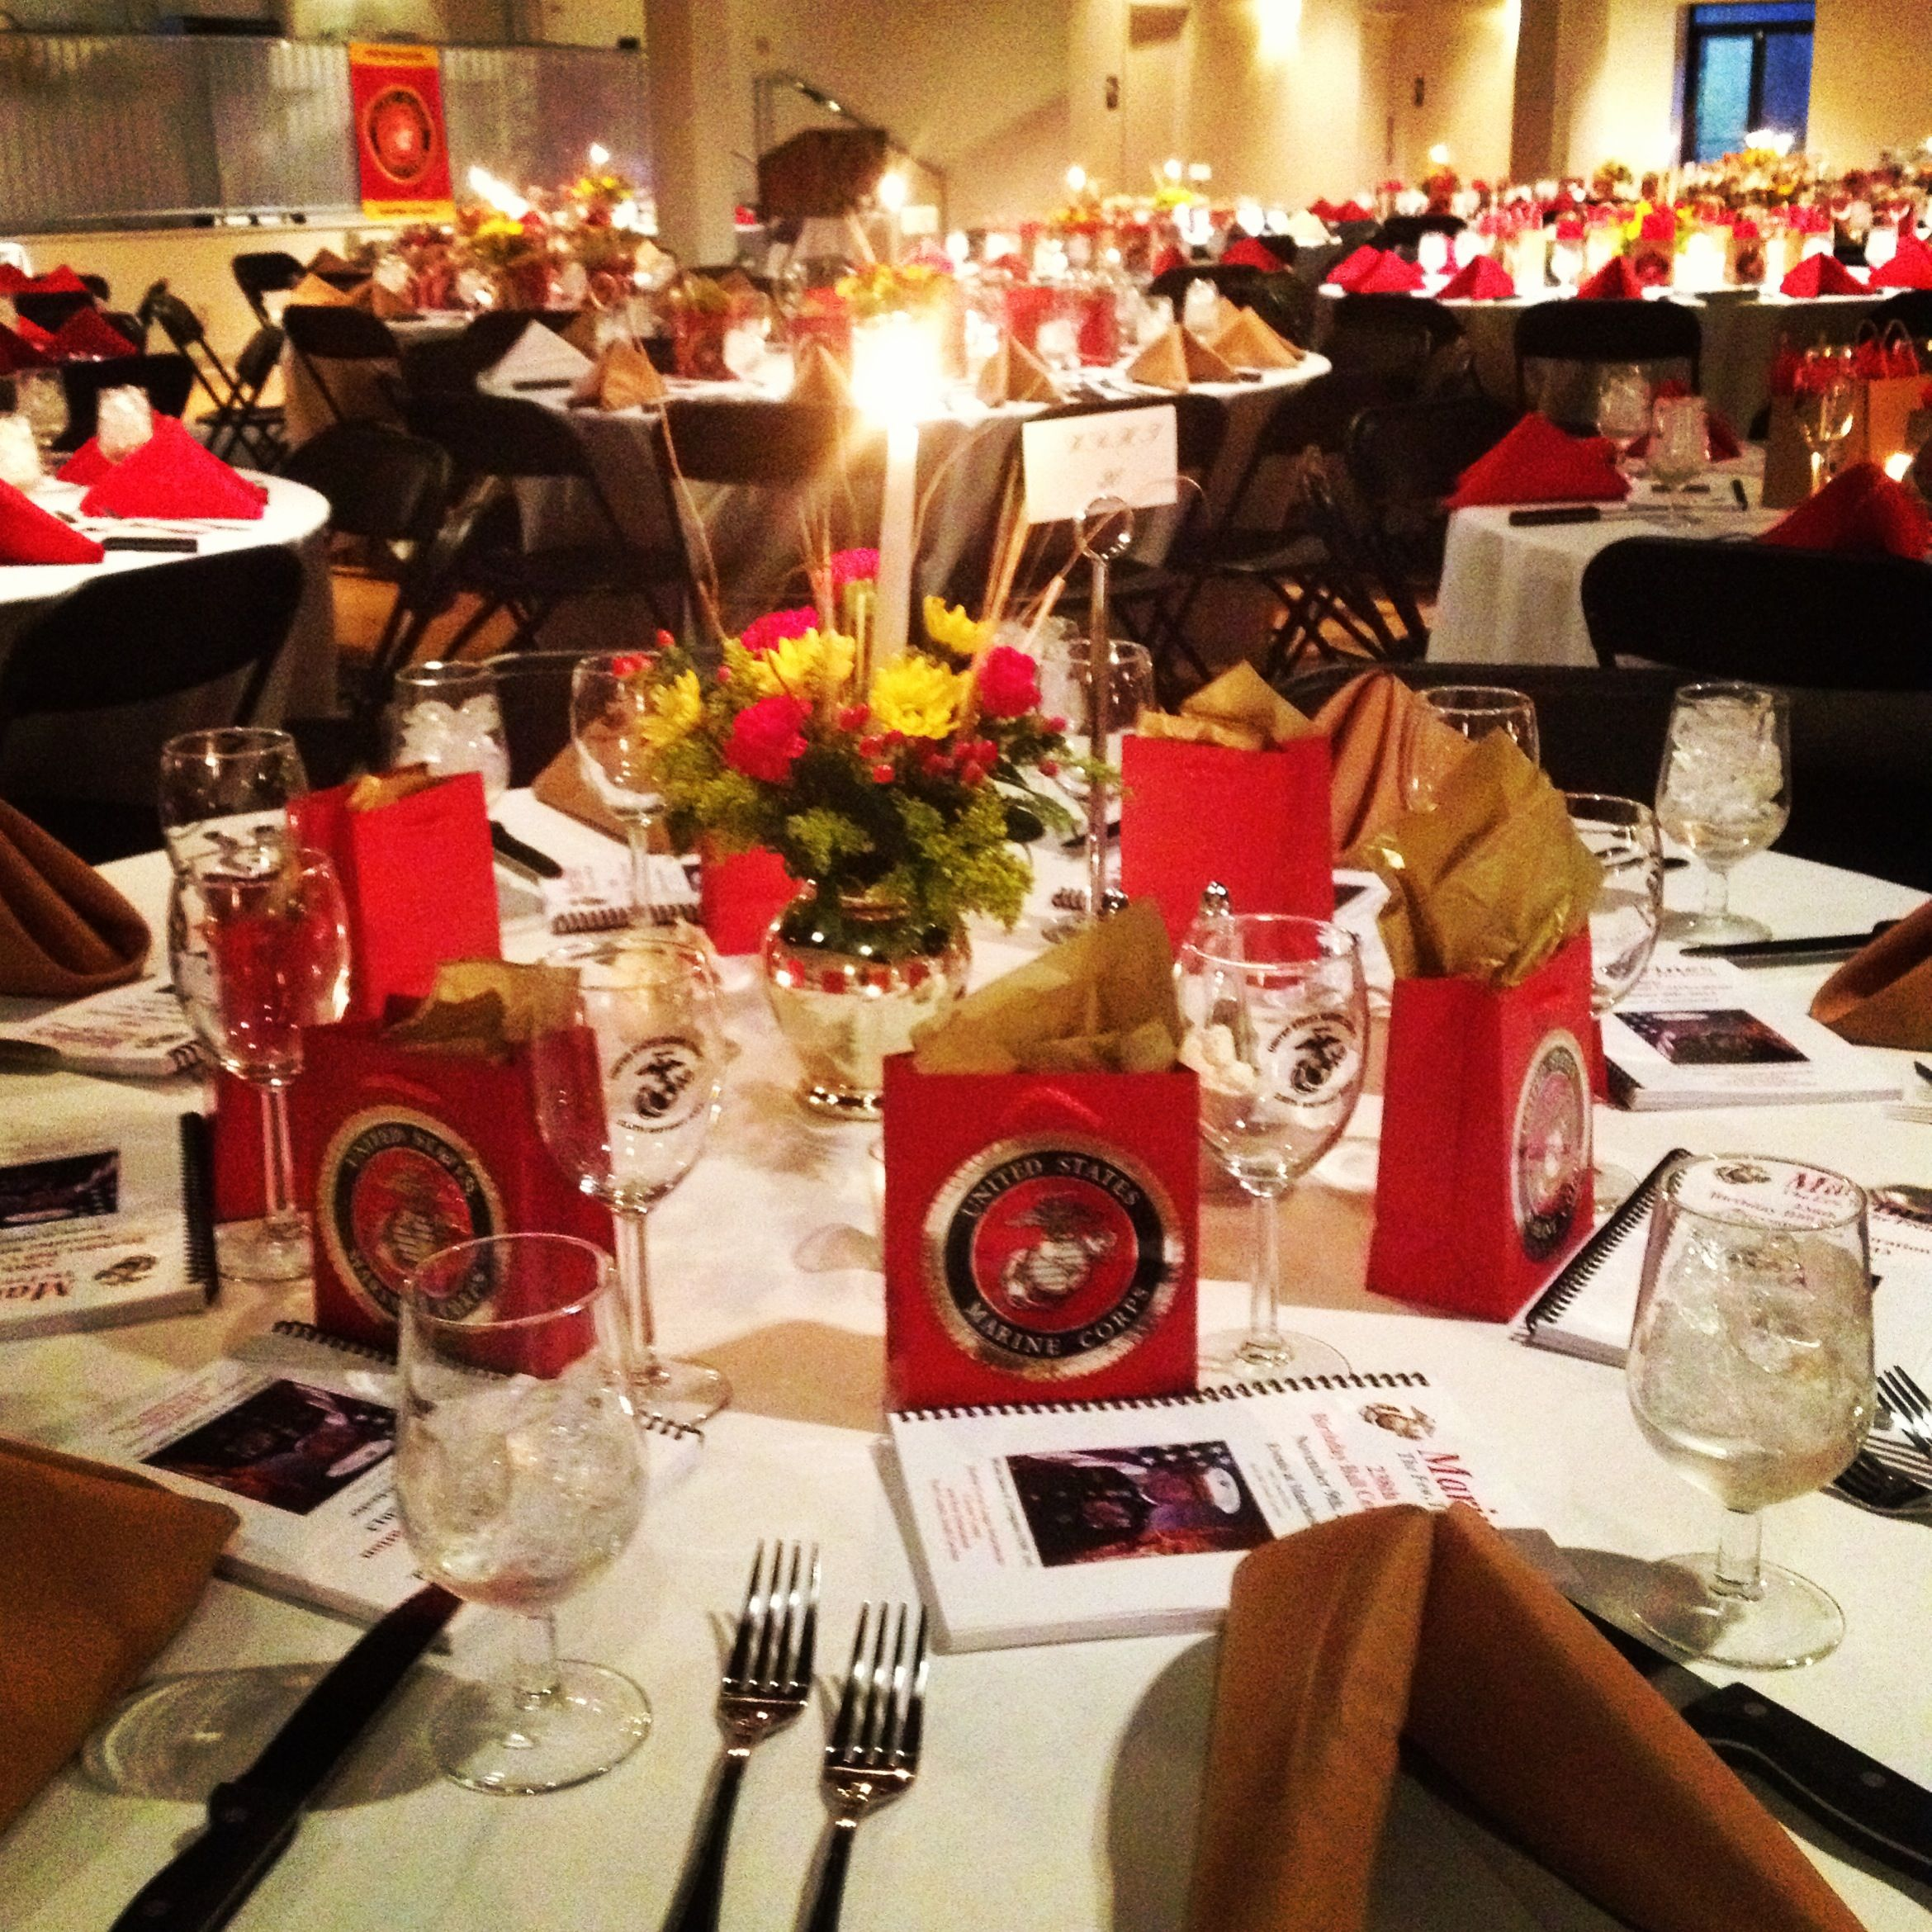 Tablescape From The Marine Corps Ball